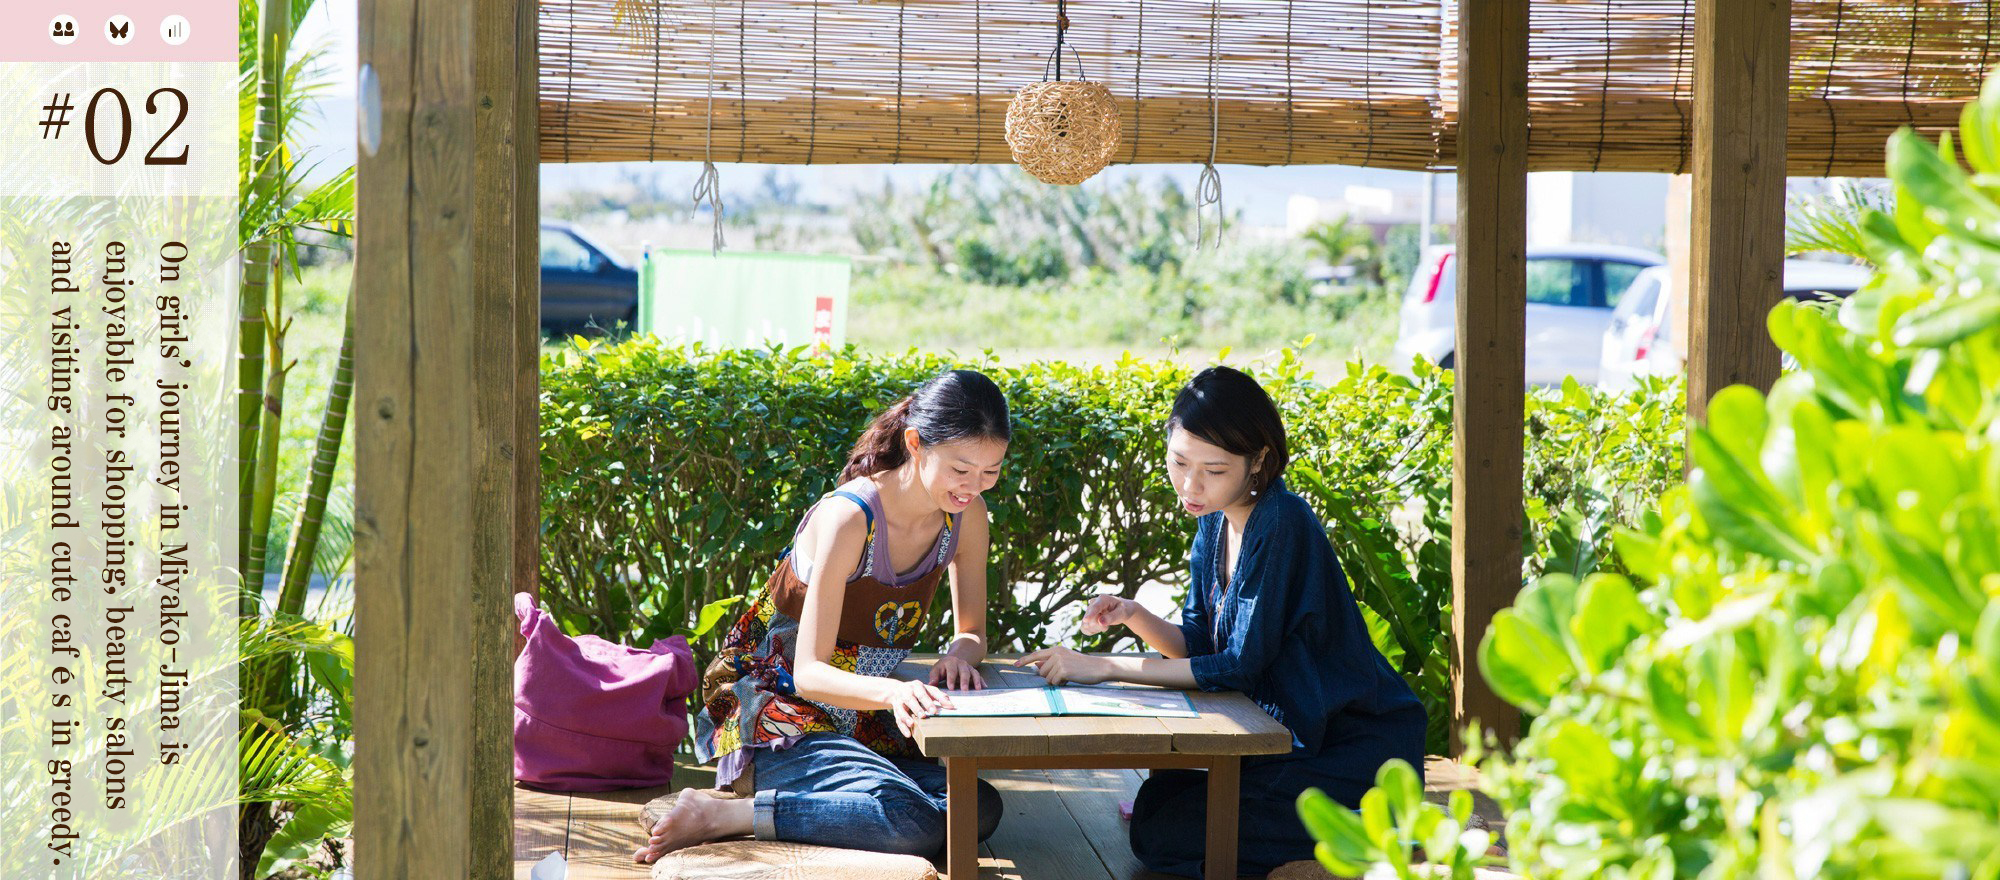 On girls journey in Miyako-Jima is enjoyable for shopping, beauty salons and visiting around cute cafés in greedy.